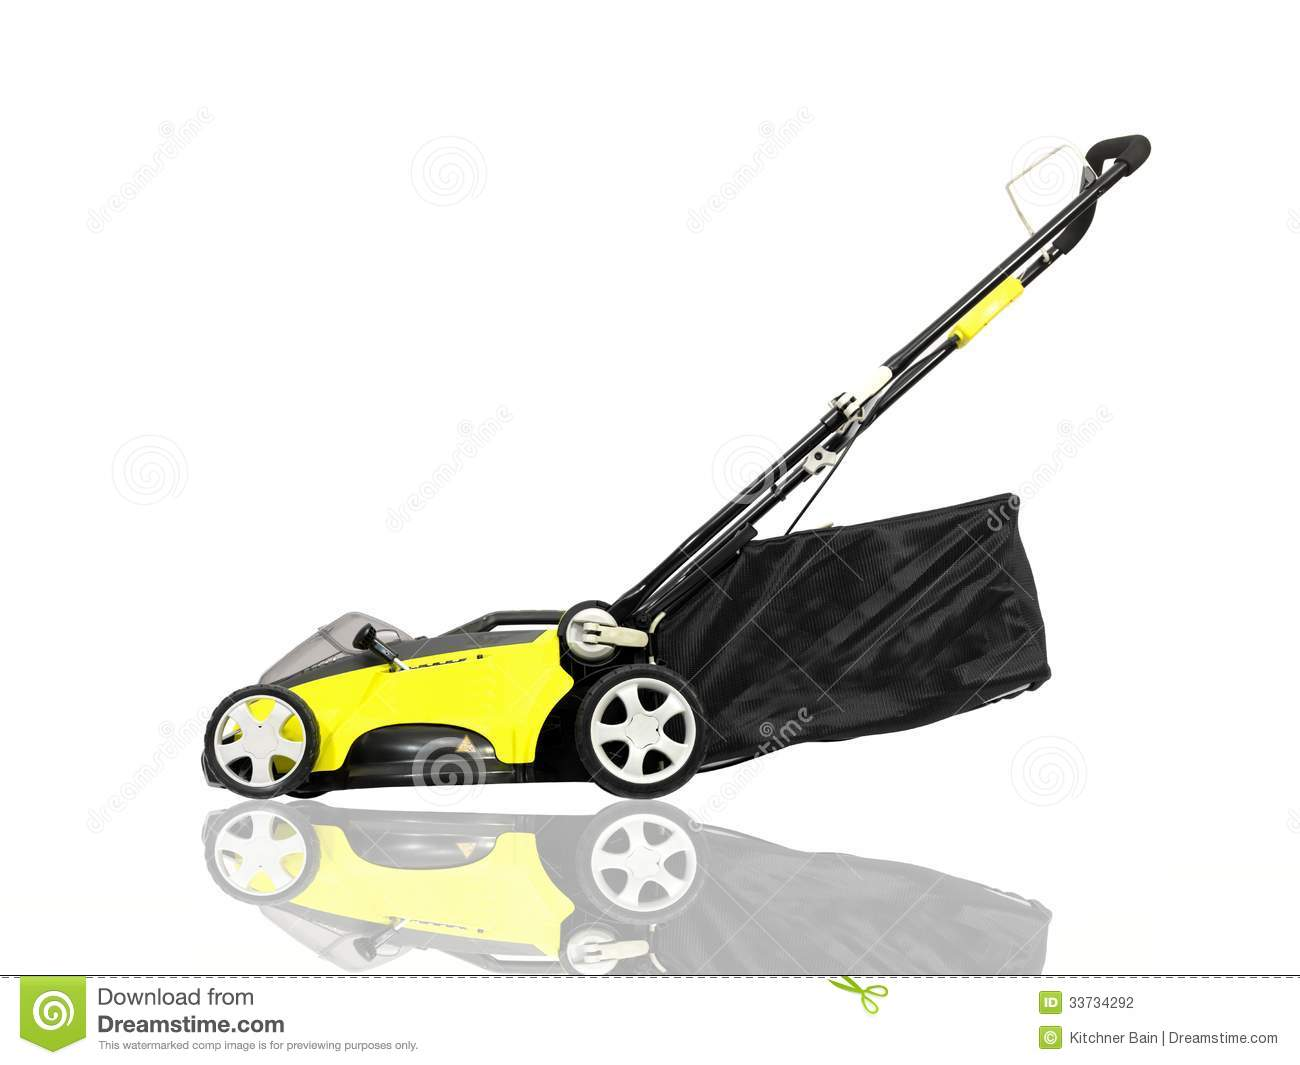 Rechargable Lawn Mower On A White Background Mr No Pr No 0 108 0